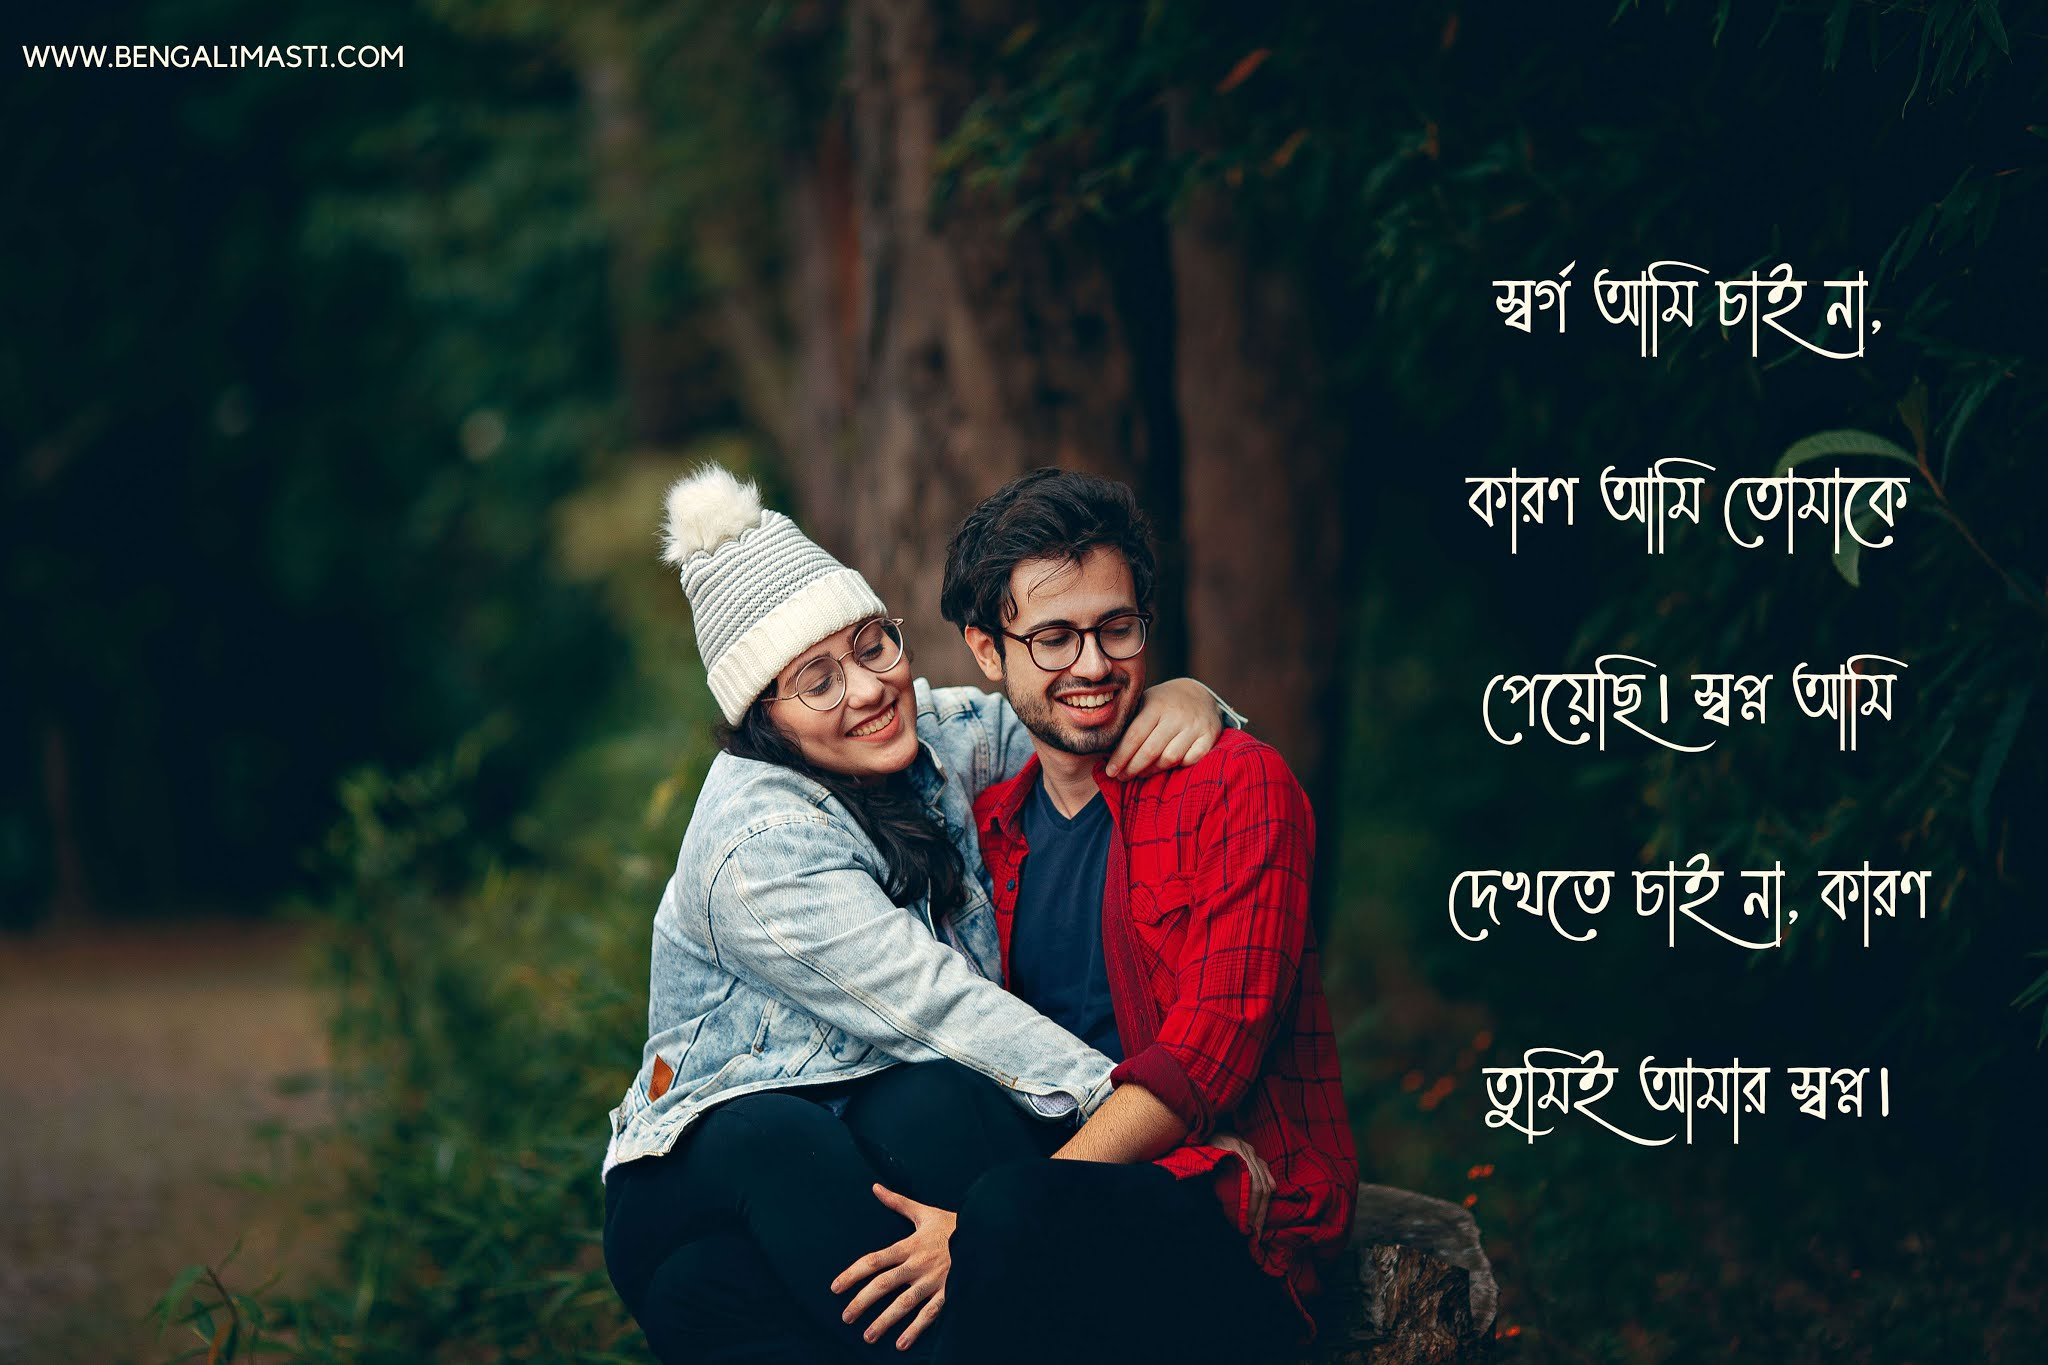 Bengali Love caption